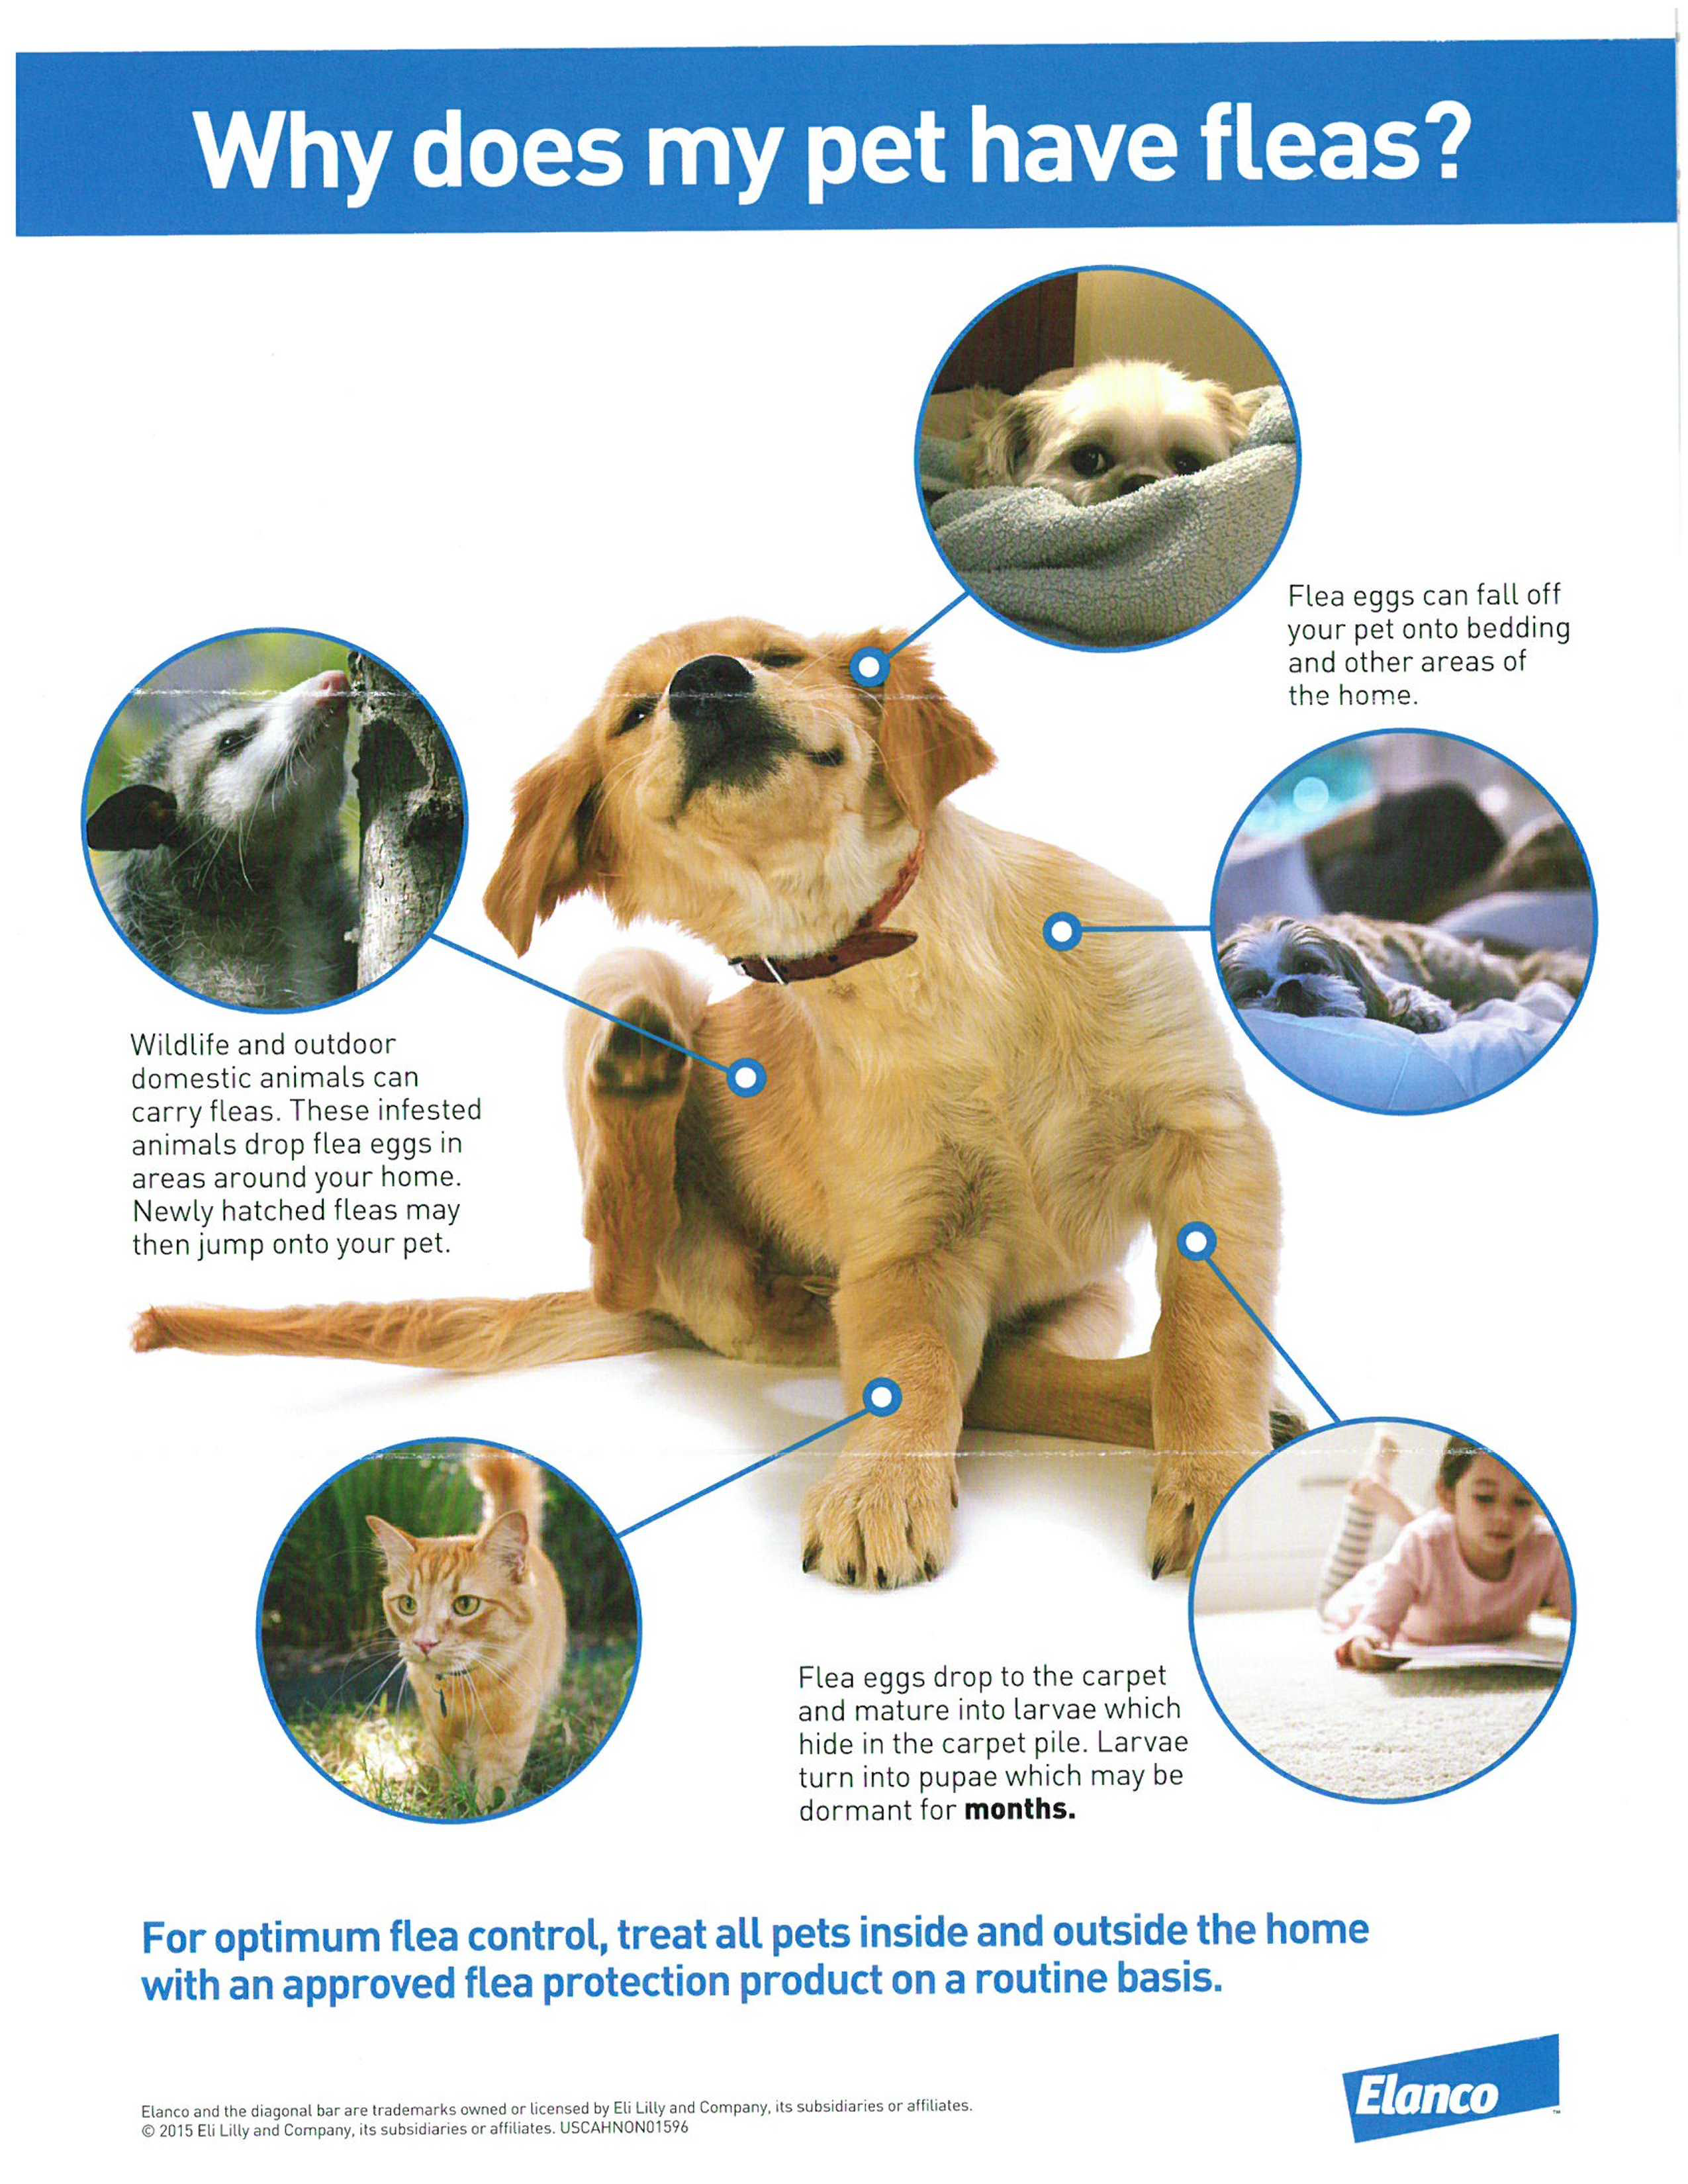 Does my pet have fleas - For optimum flea control, treat all pets inside and outside the home with an approved flea protection protection product on a routine basis.